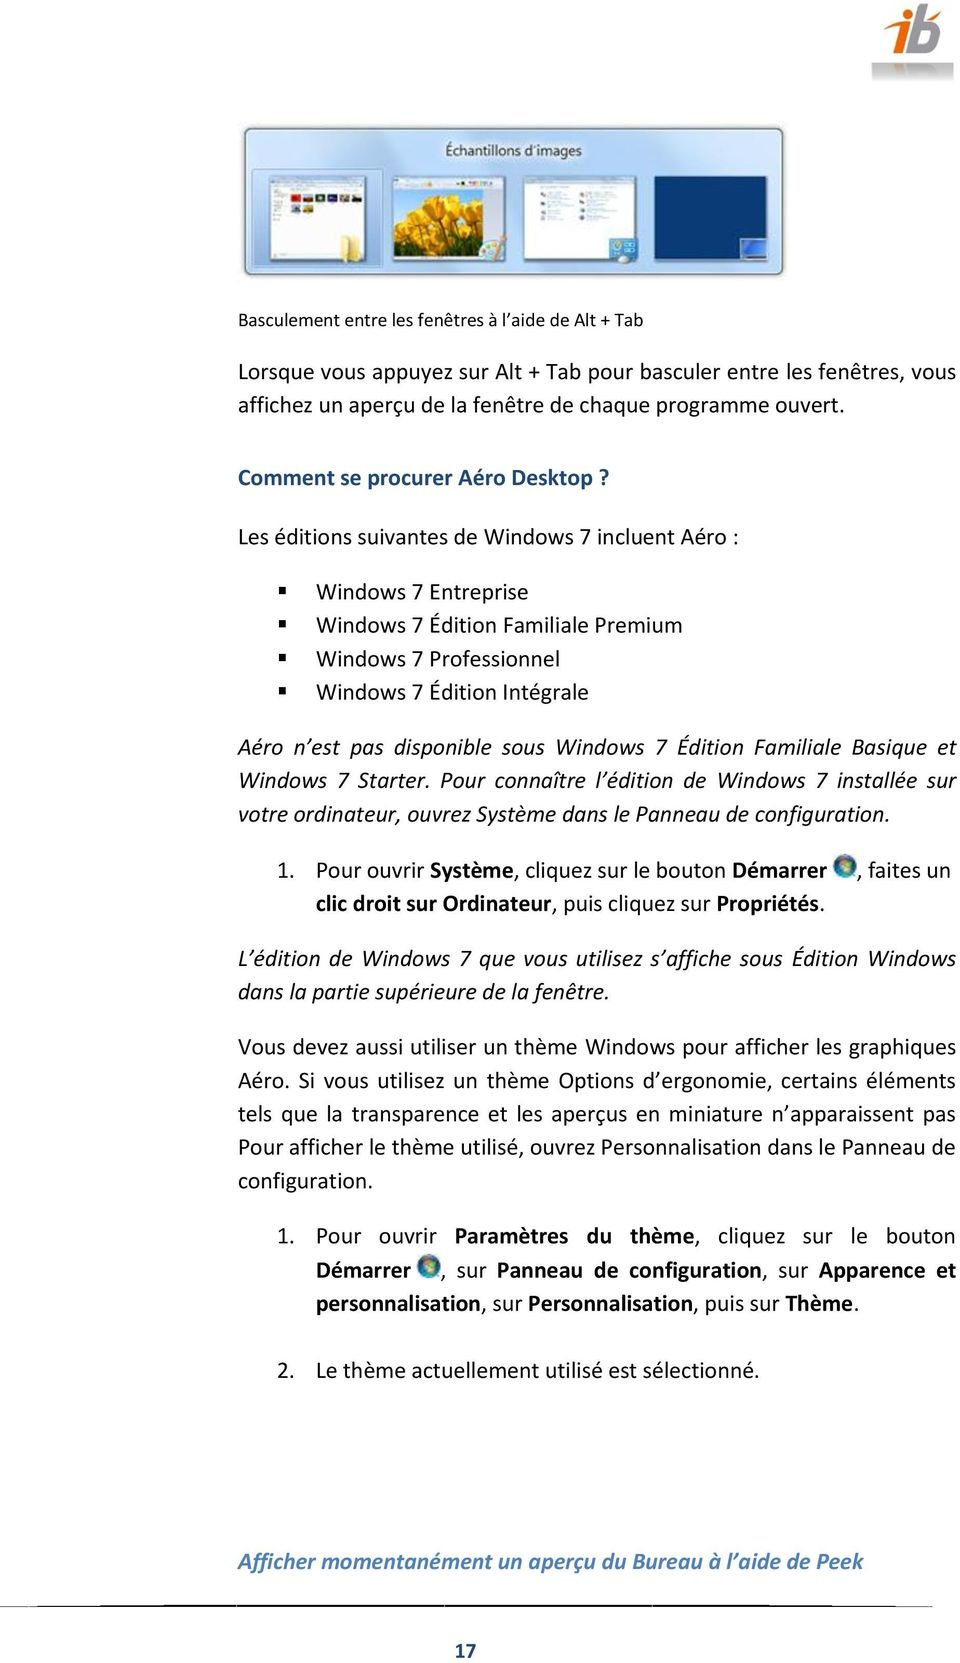 Les éditions suivantes de Windows 7 incluent Aéro : Windows 7 Entreprise Windows 7 Édition Familiale Premium Windows 7 Professionnel Windows 7 Édition Intégrale Aéro n est pas disponible sous Windows